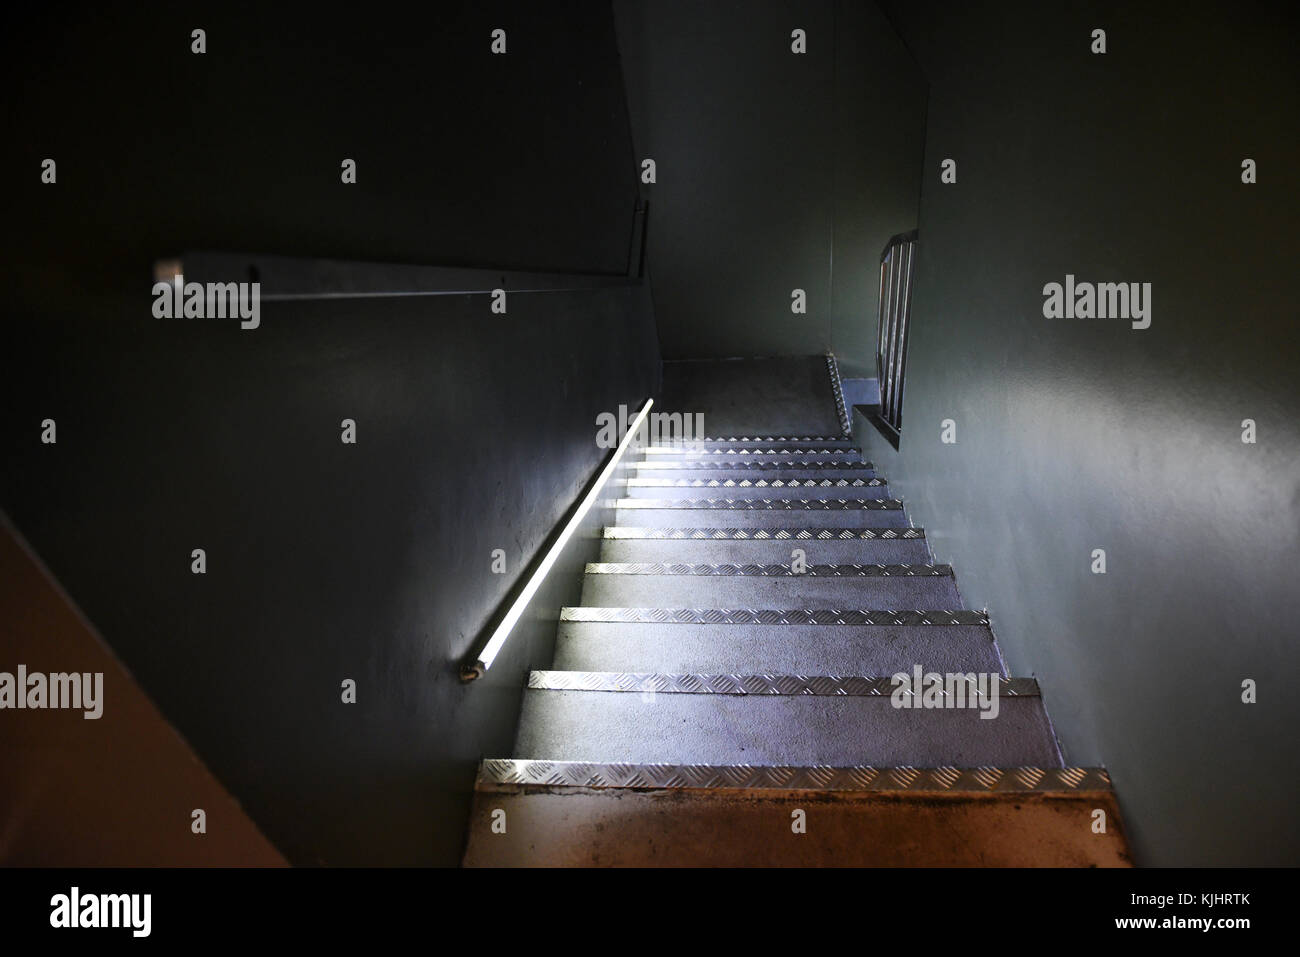 Steep Flight Of Steps In A Dark Shadowy Interior With An Illuminated Hand  Rail And Metal Edged Treads